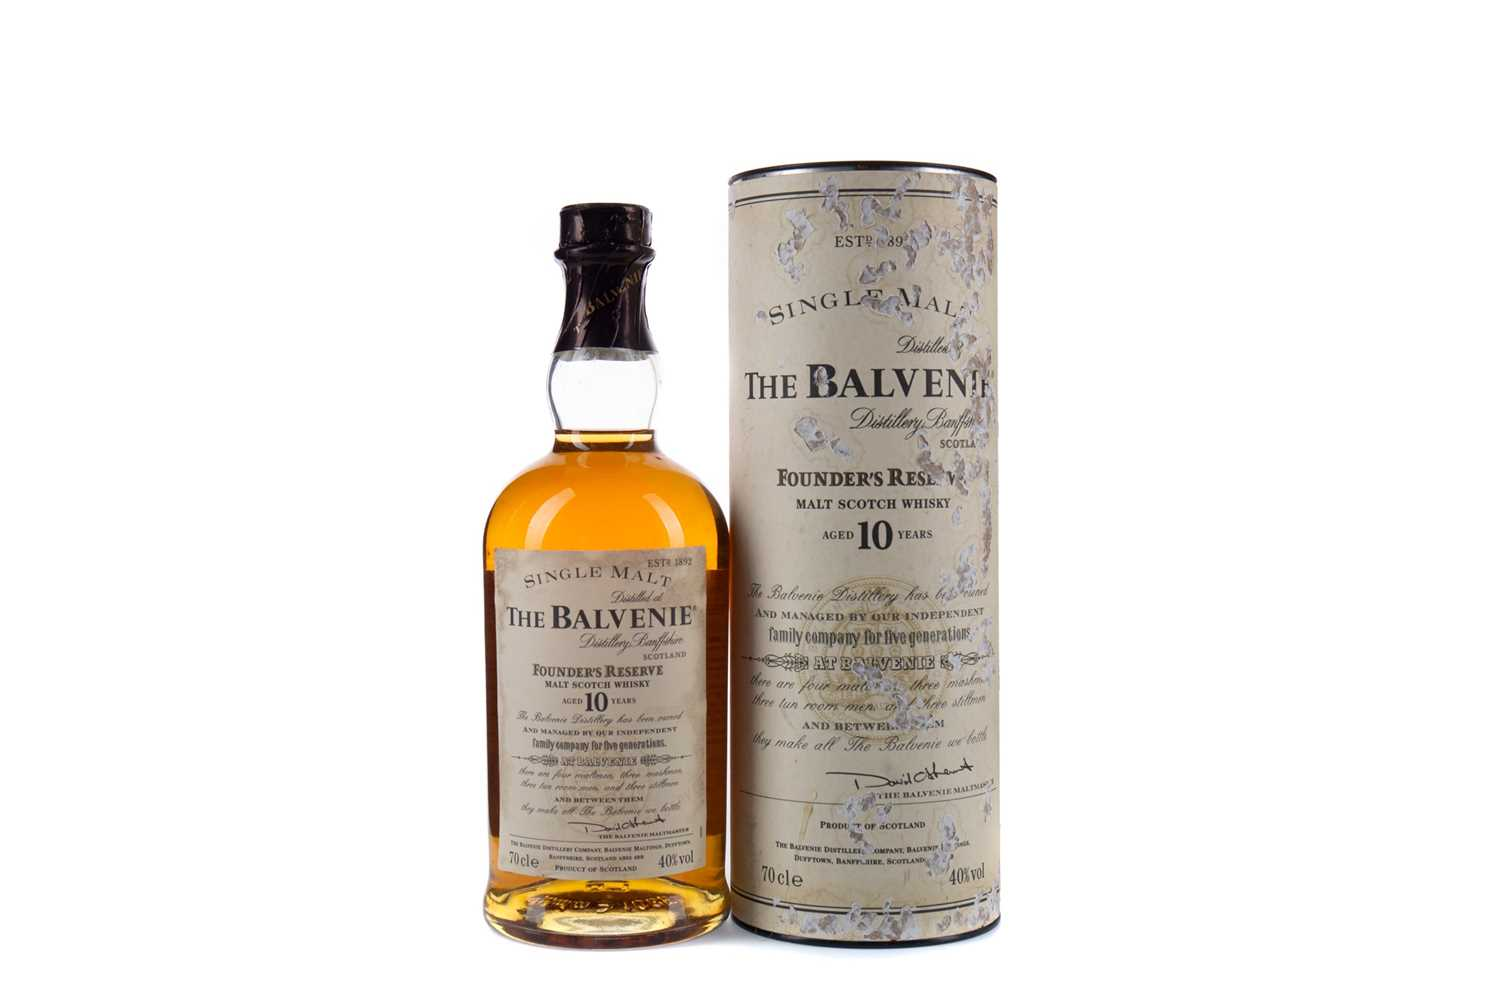 Lot 4 - BALVENIE FOUNDER'S RESERVE AGED 10 YEARS